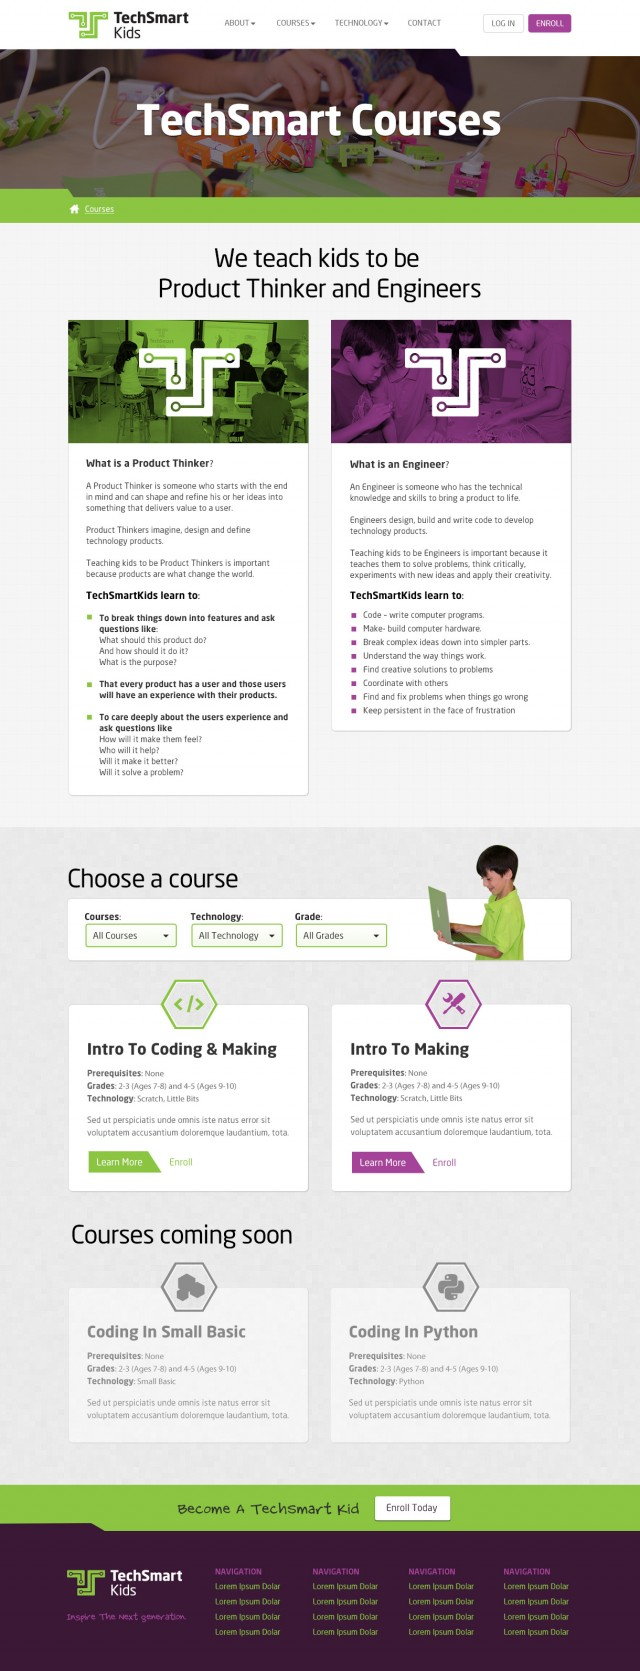 TechSmart Kids Website Courses